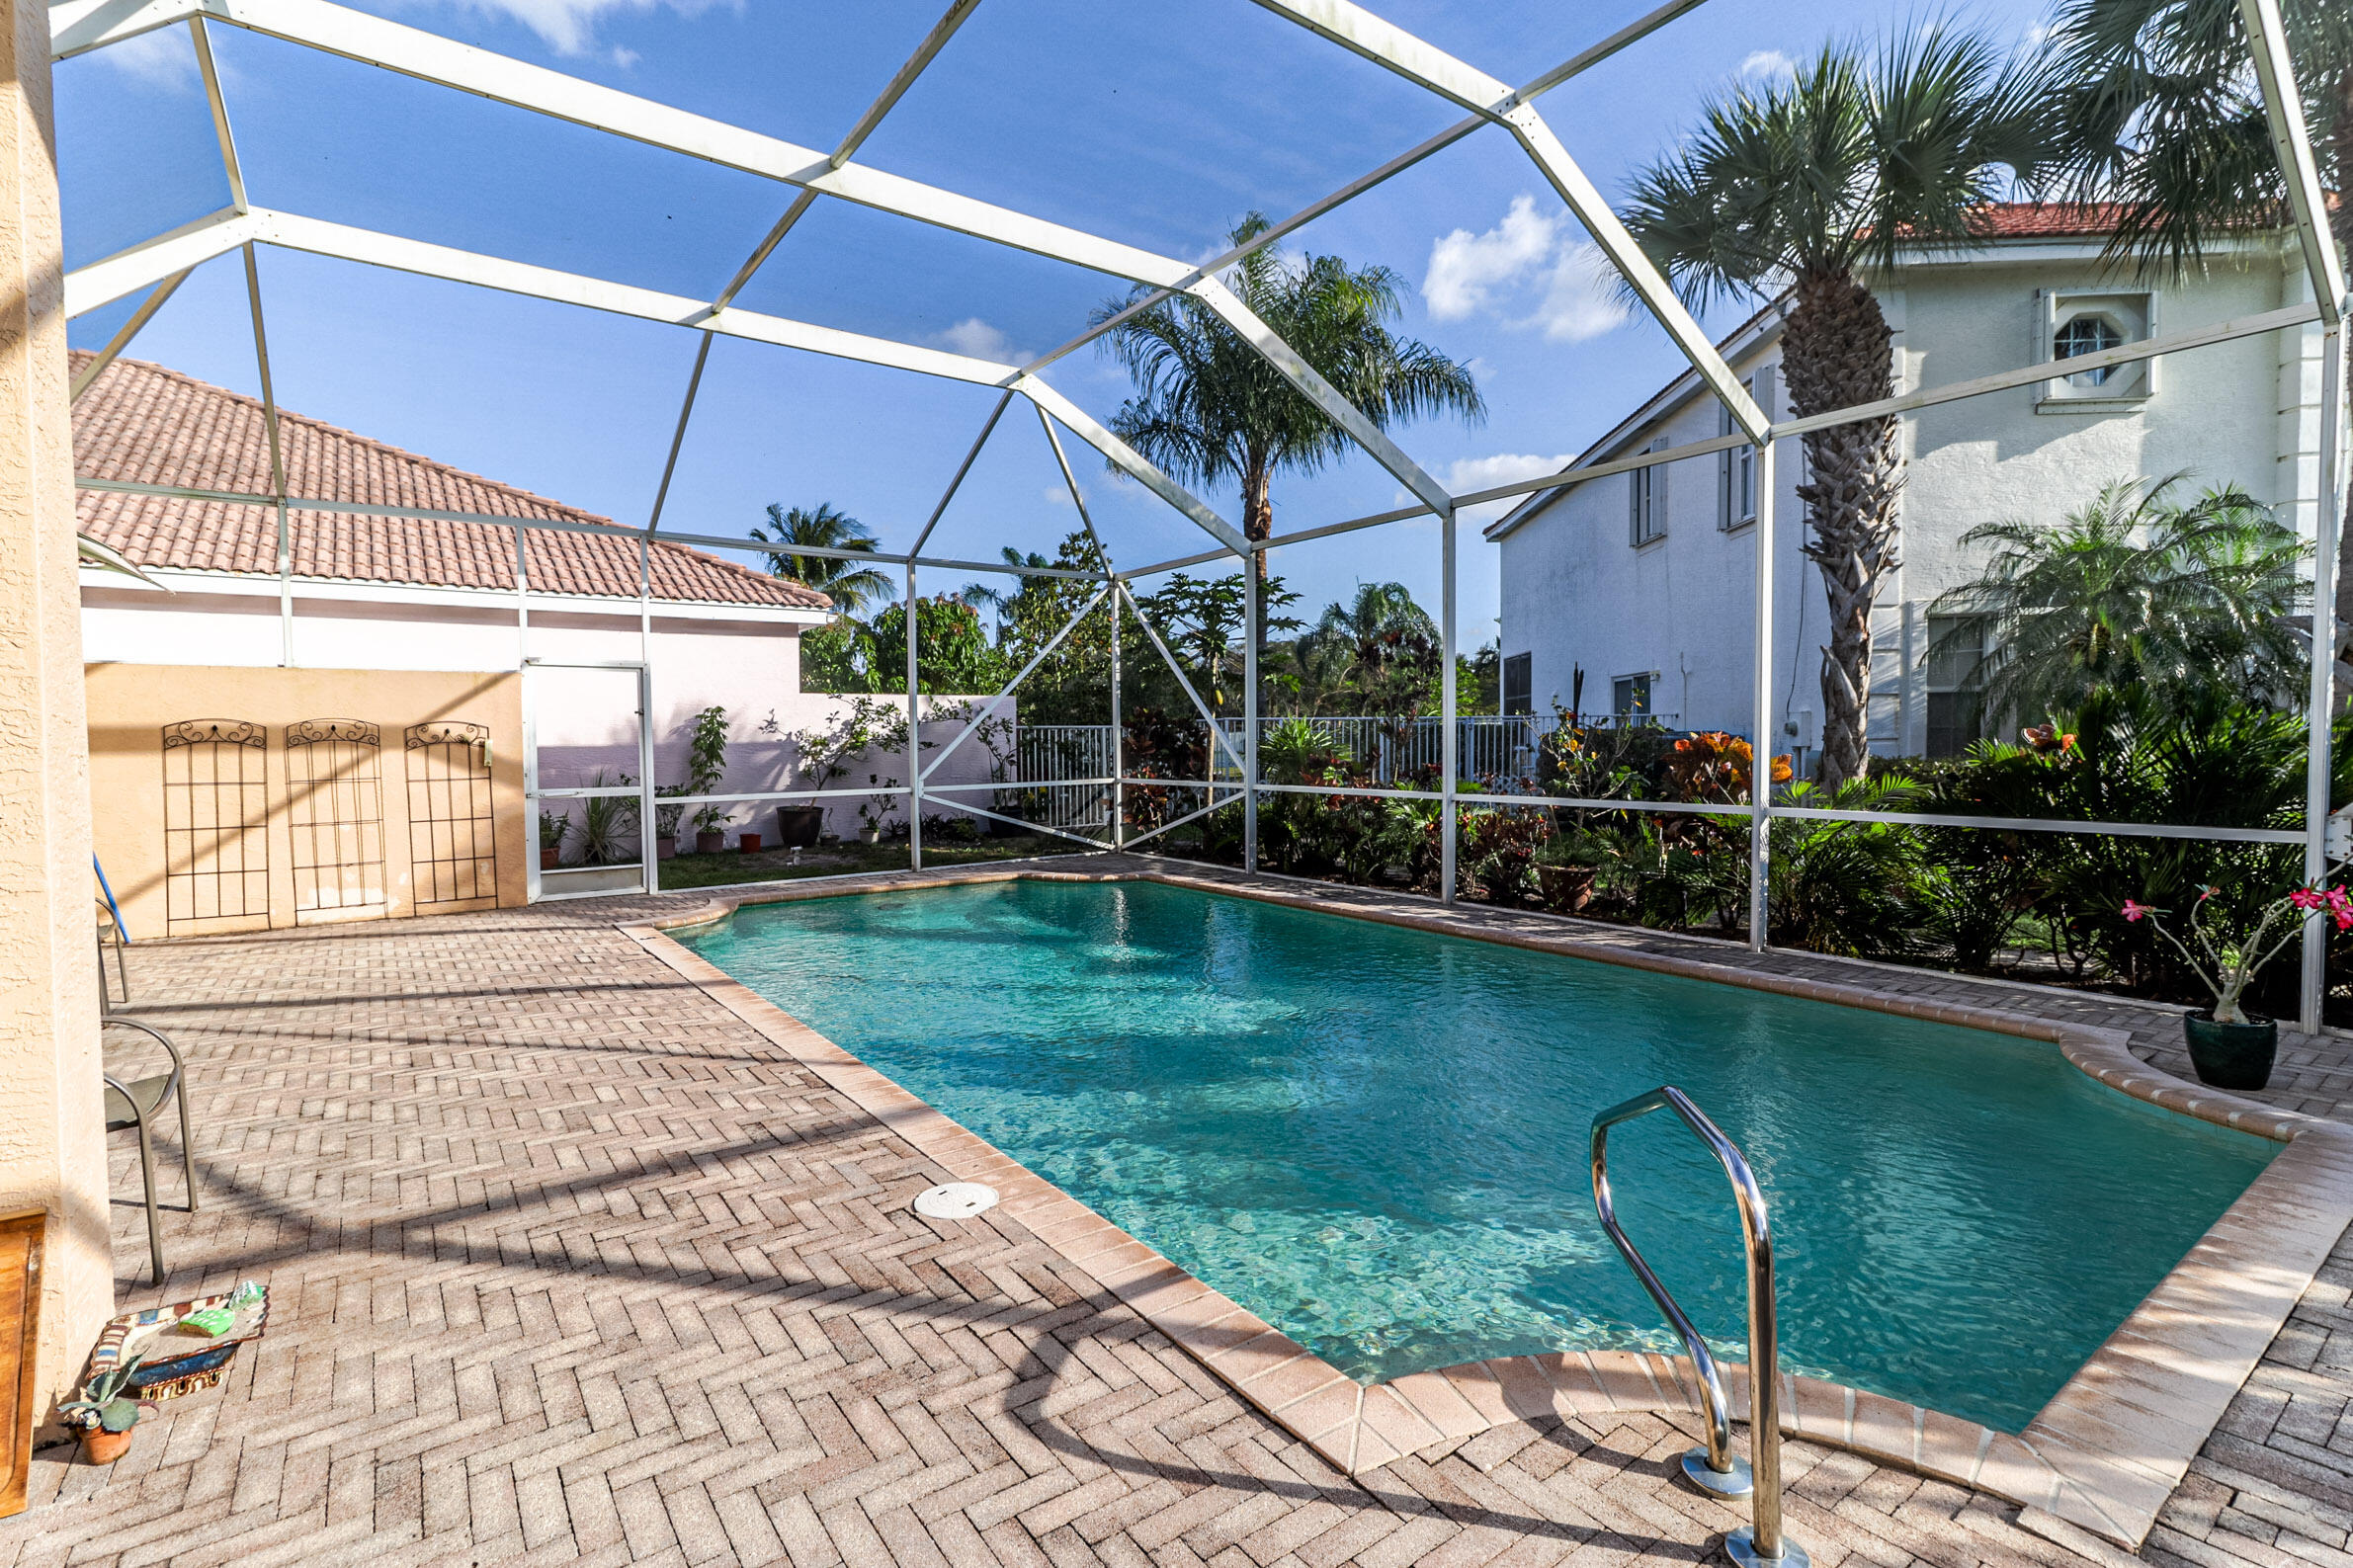 3048 El Camino Real West Palm Beach, FL 33409 small photo 24